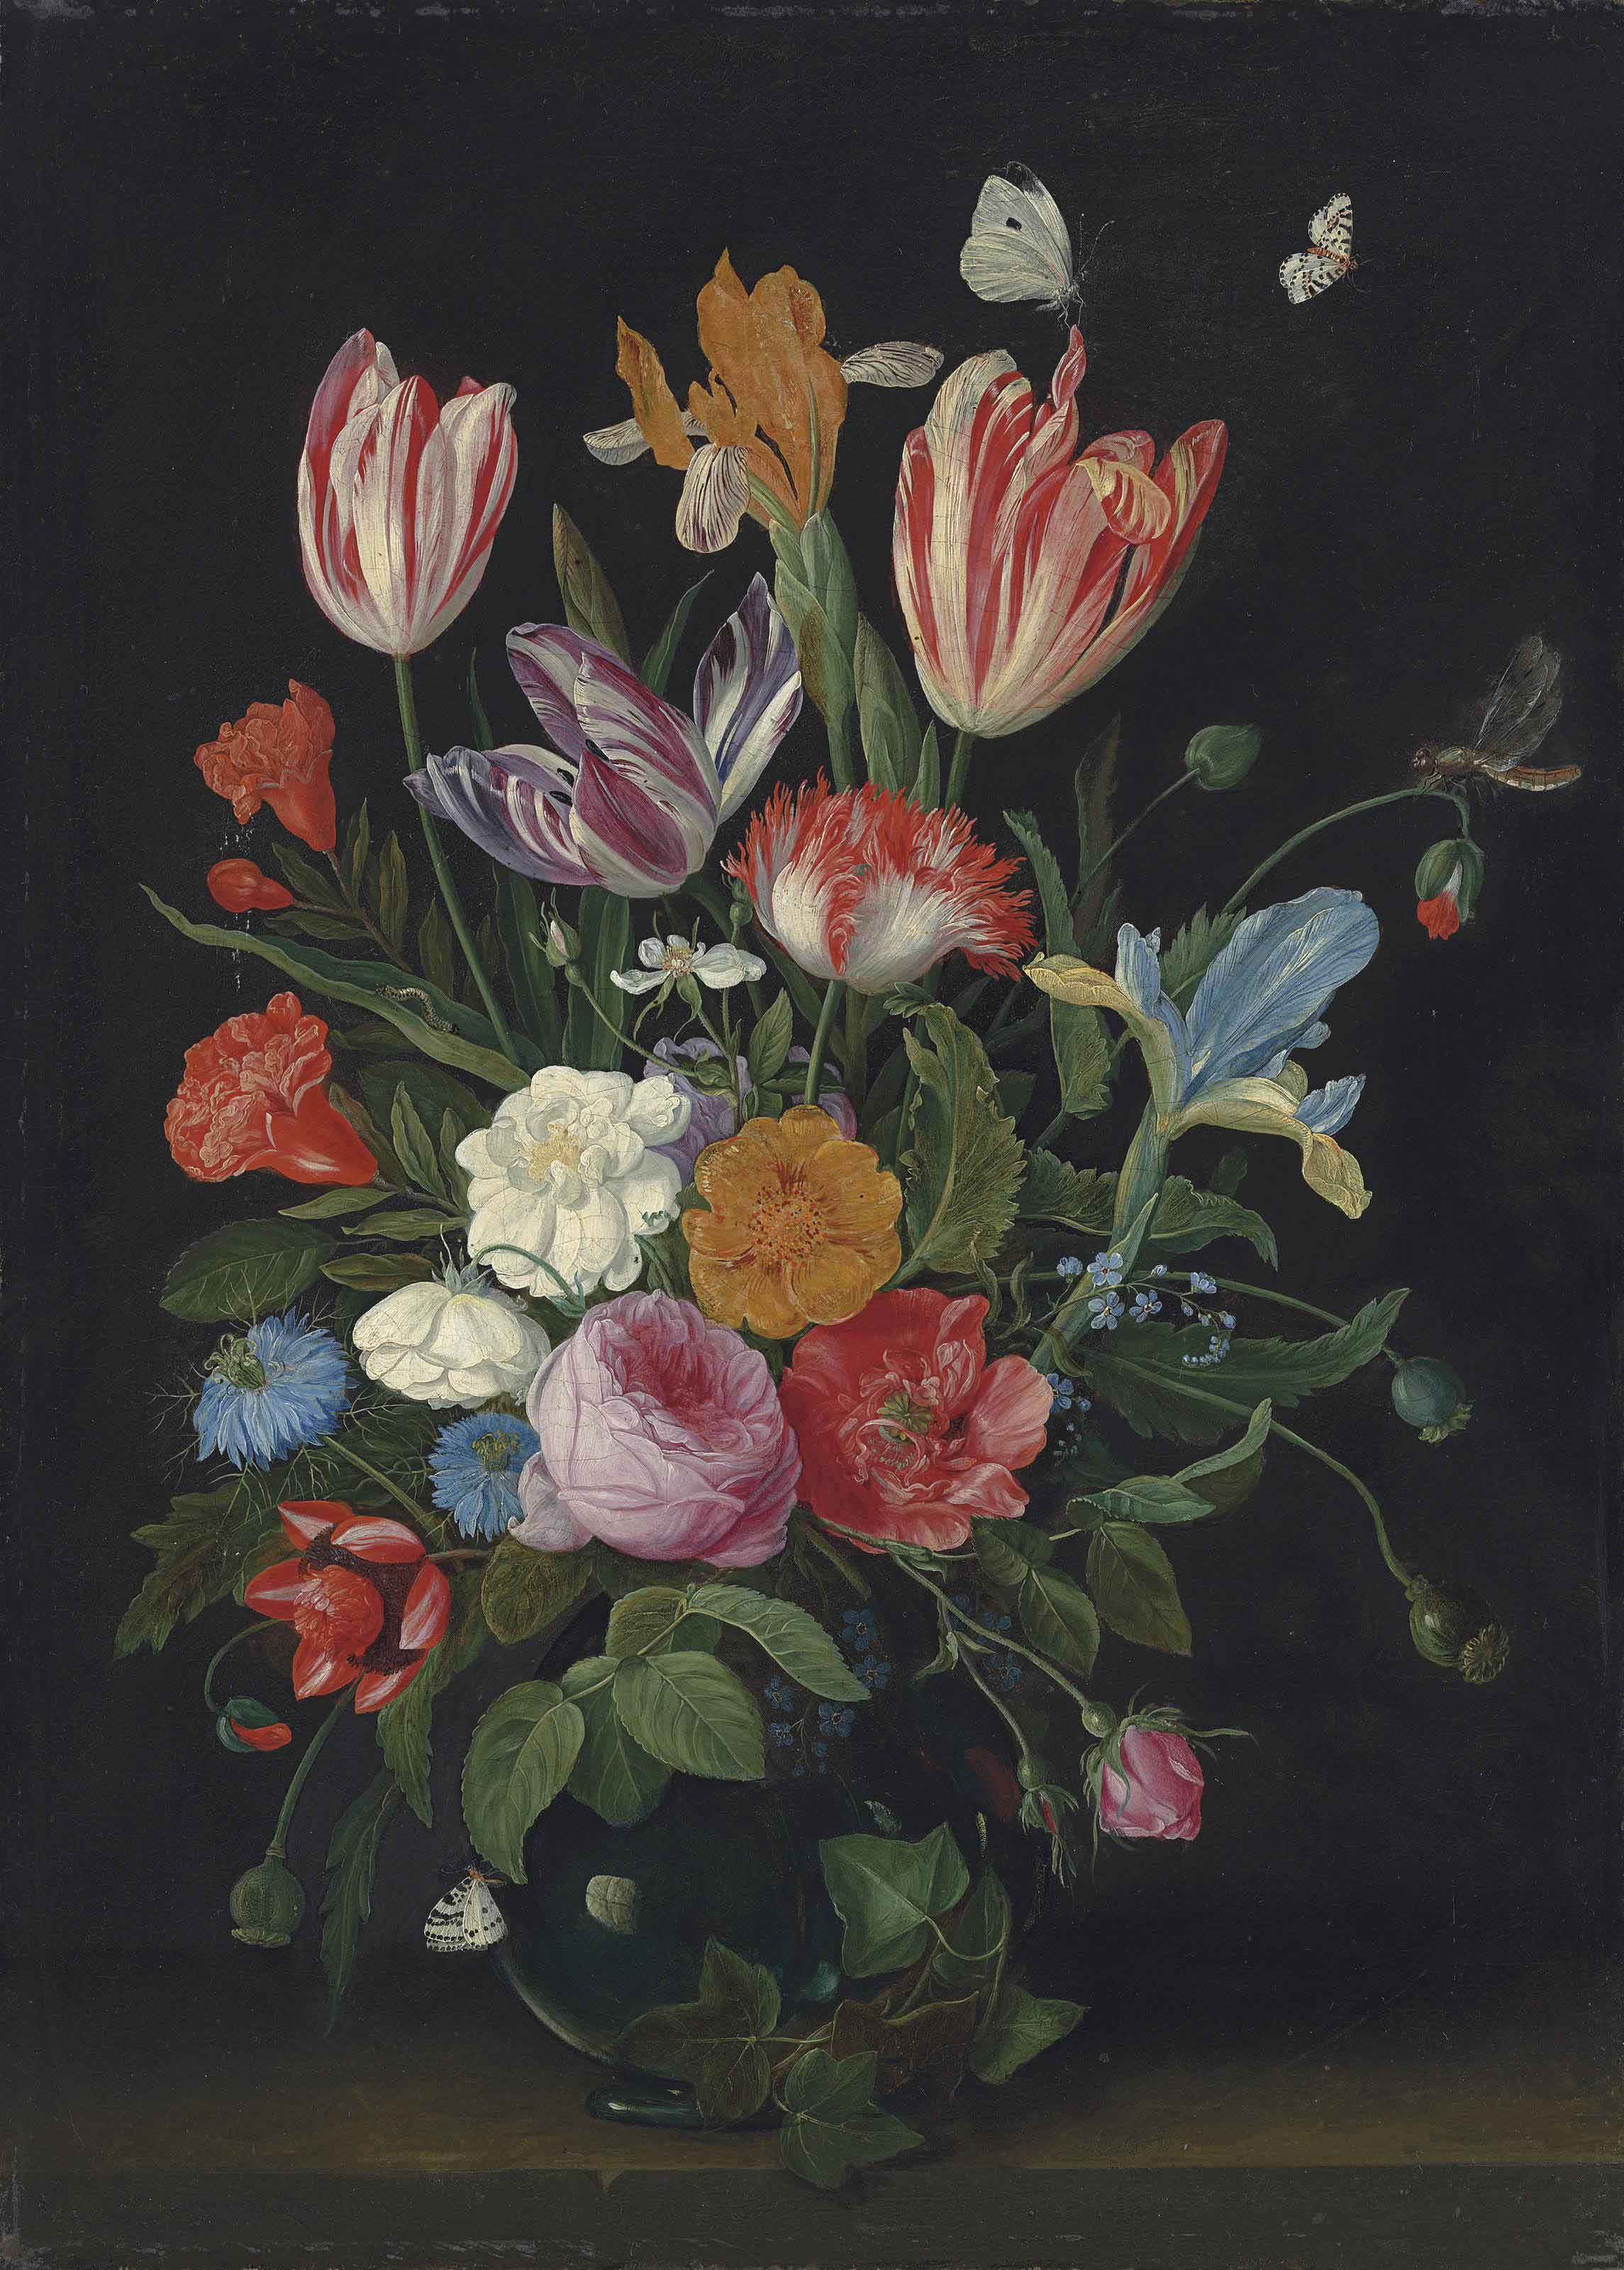 Jan Van Kessel I Antwerp 1626 1679 Parrot Tulips Irises Roses And Other Flowers In A Glass